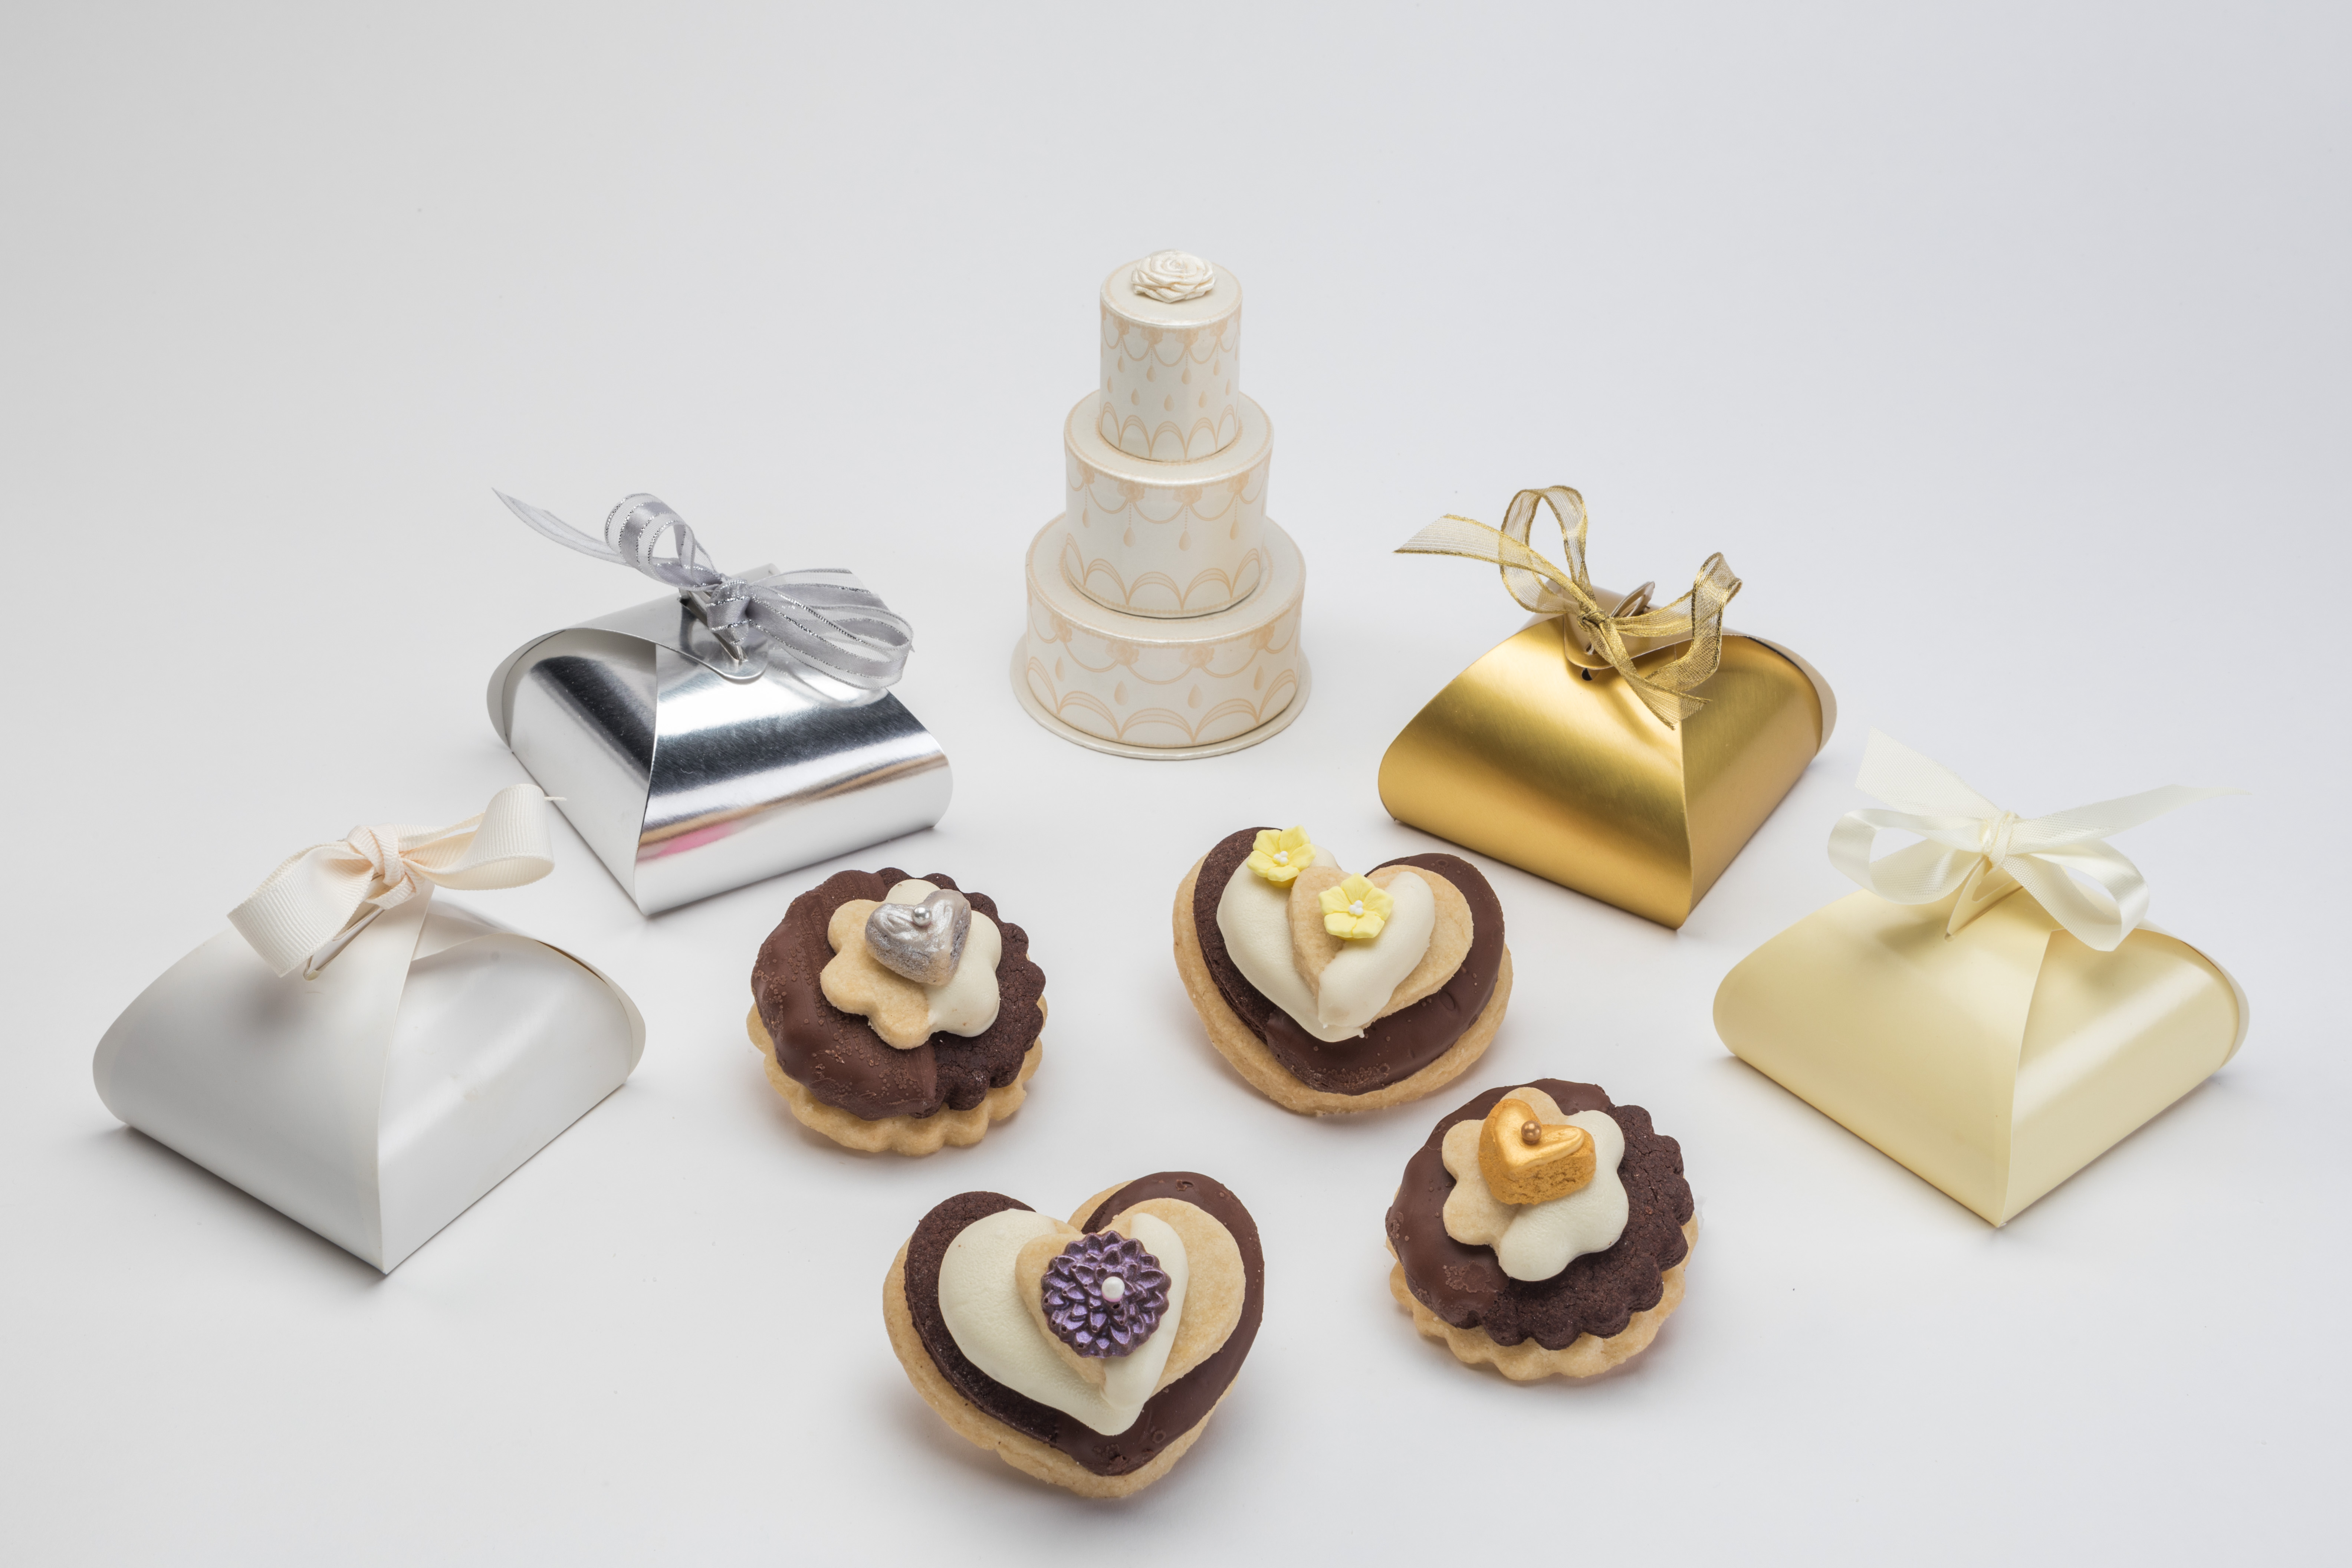 Wedding Favor Boxes Under 50 Cents : Wedding favors under cents giftwedding